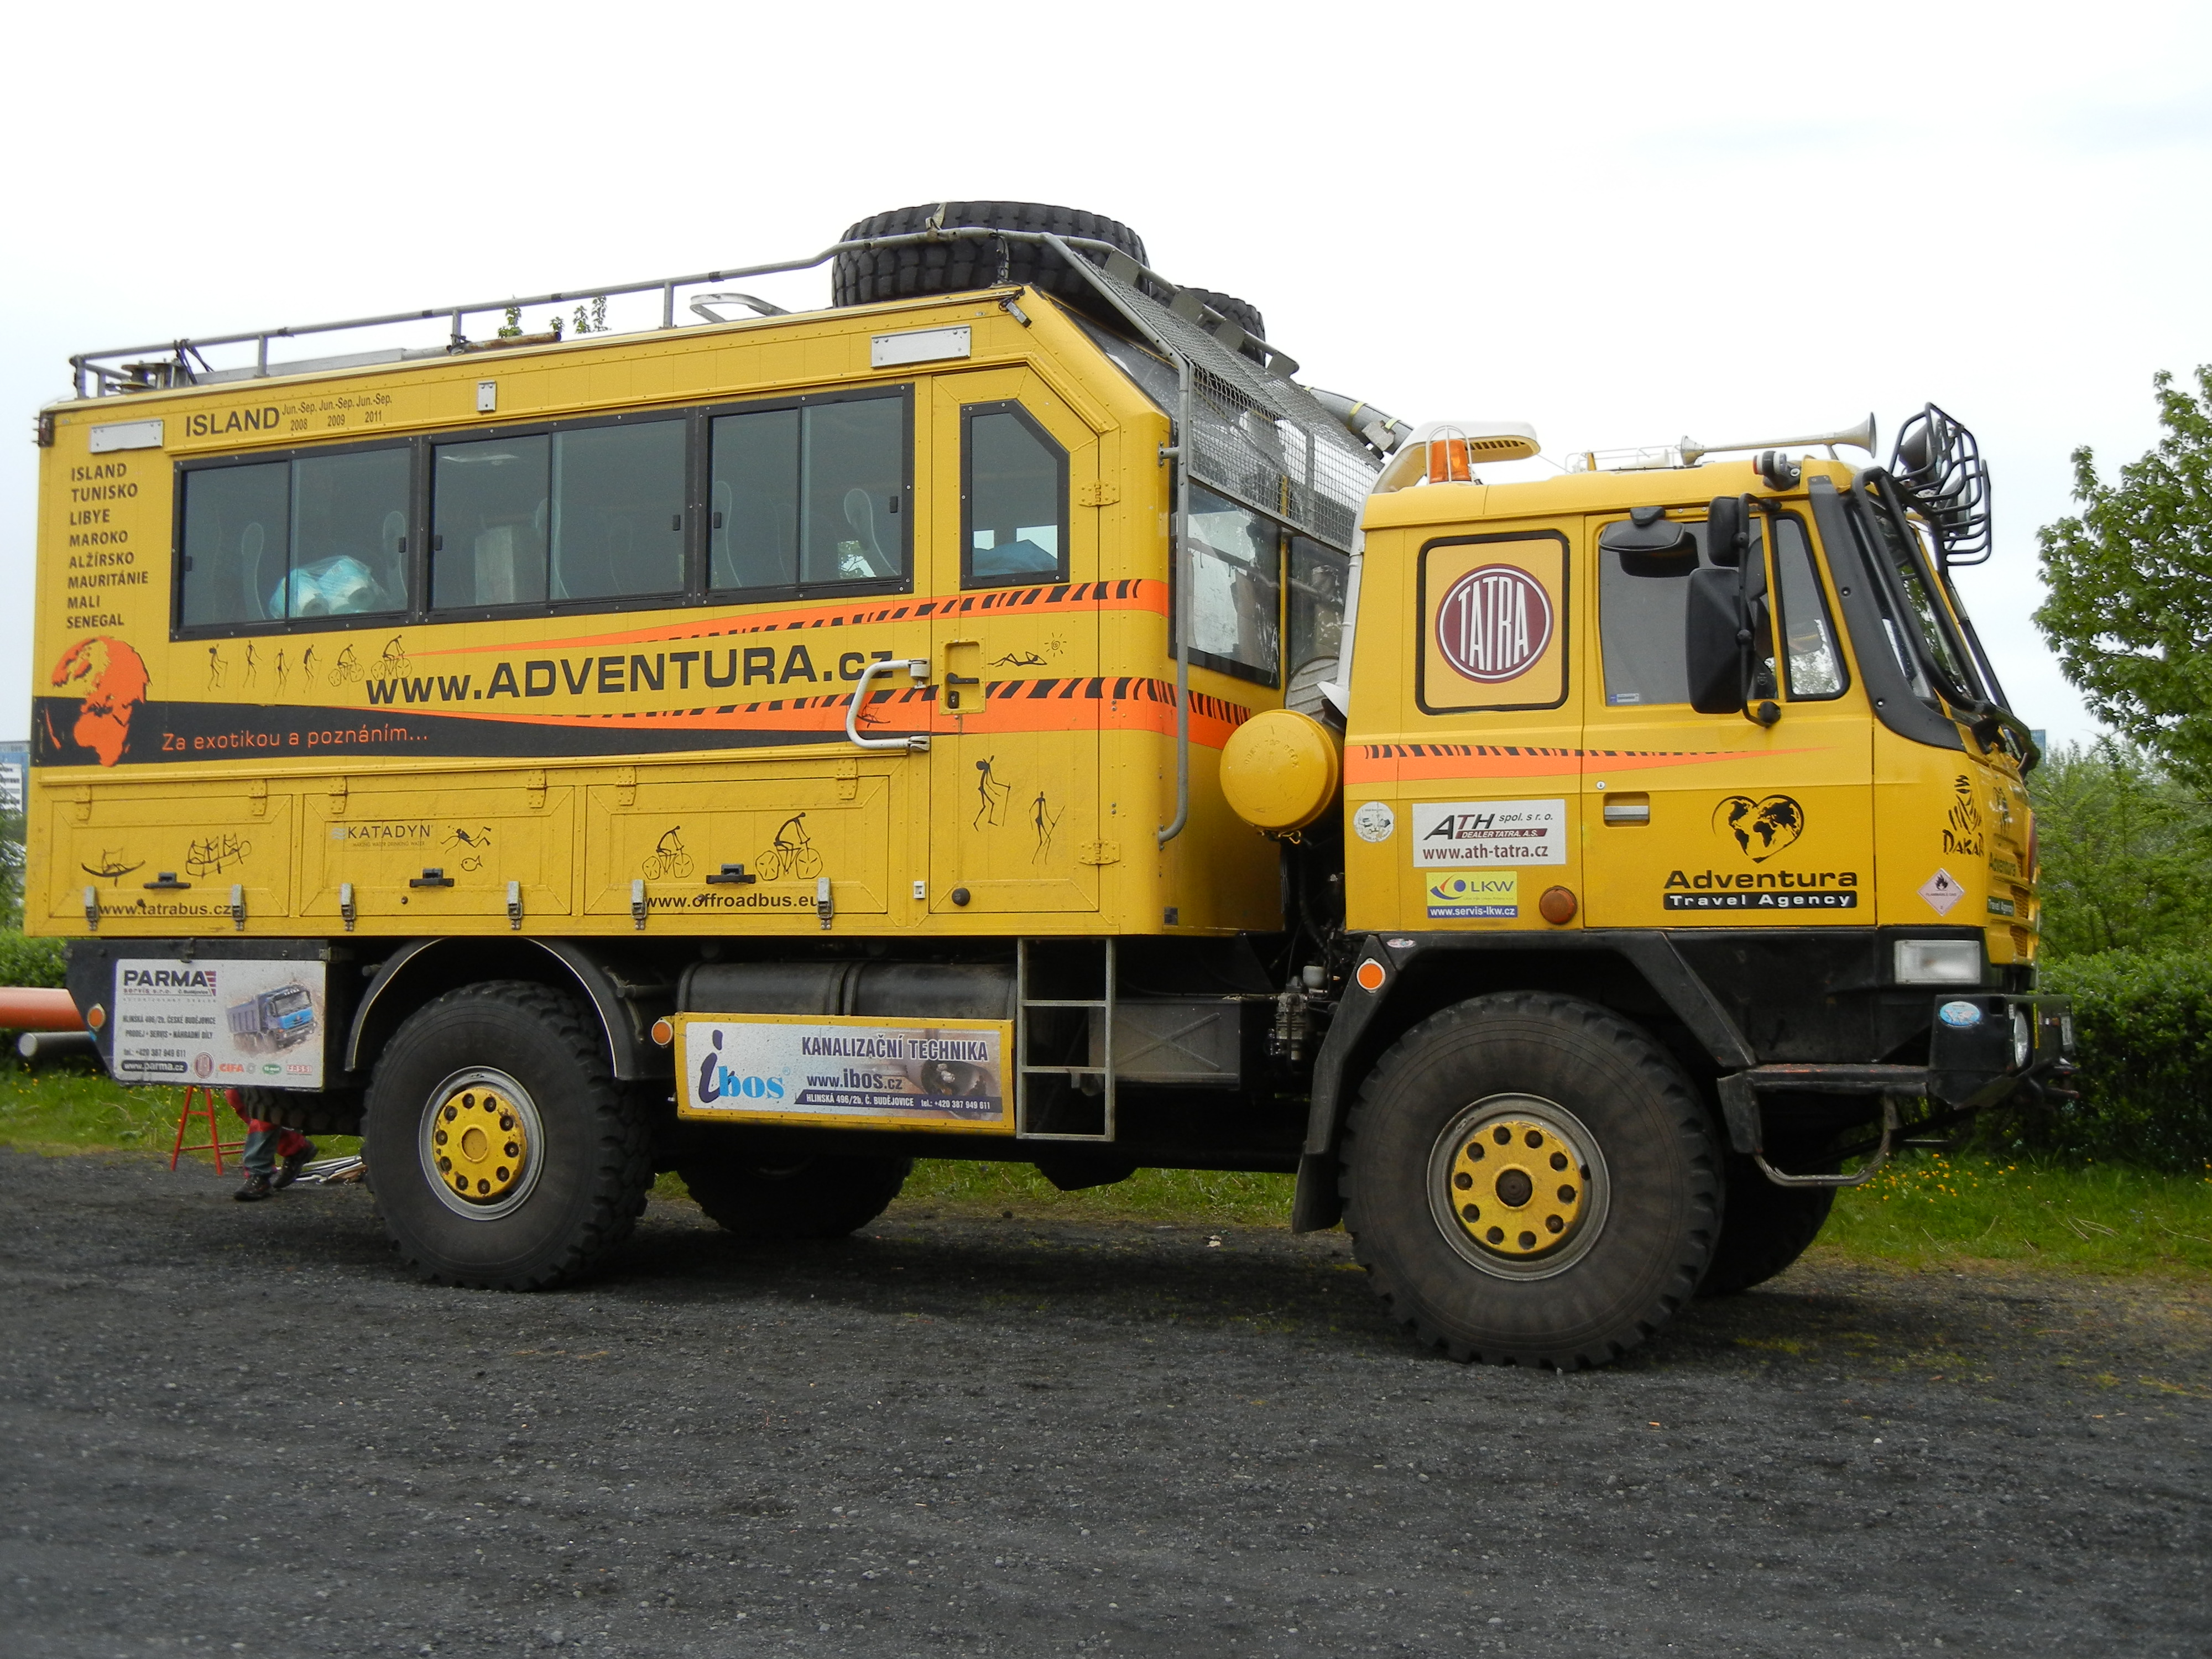 Expedition truck in Iceland